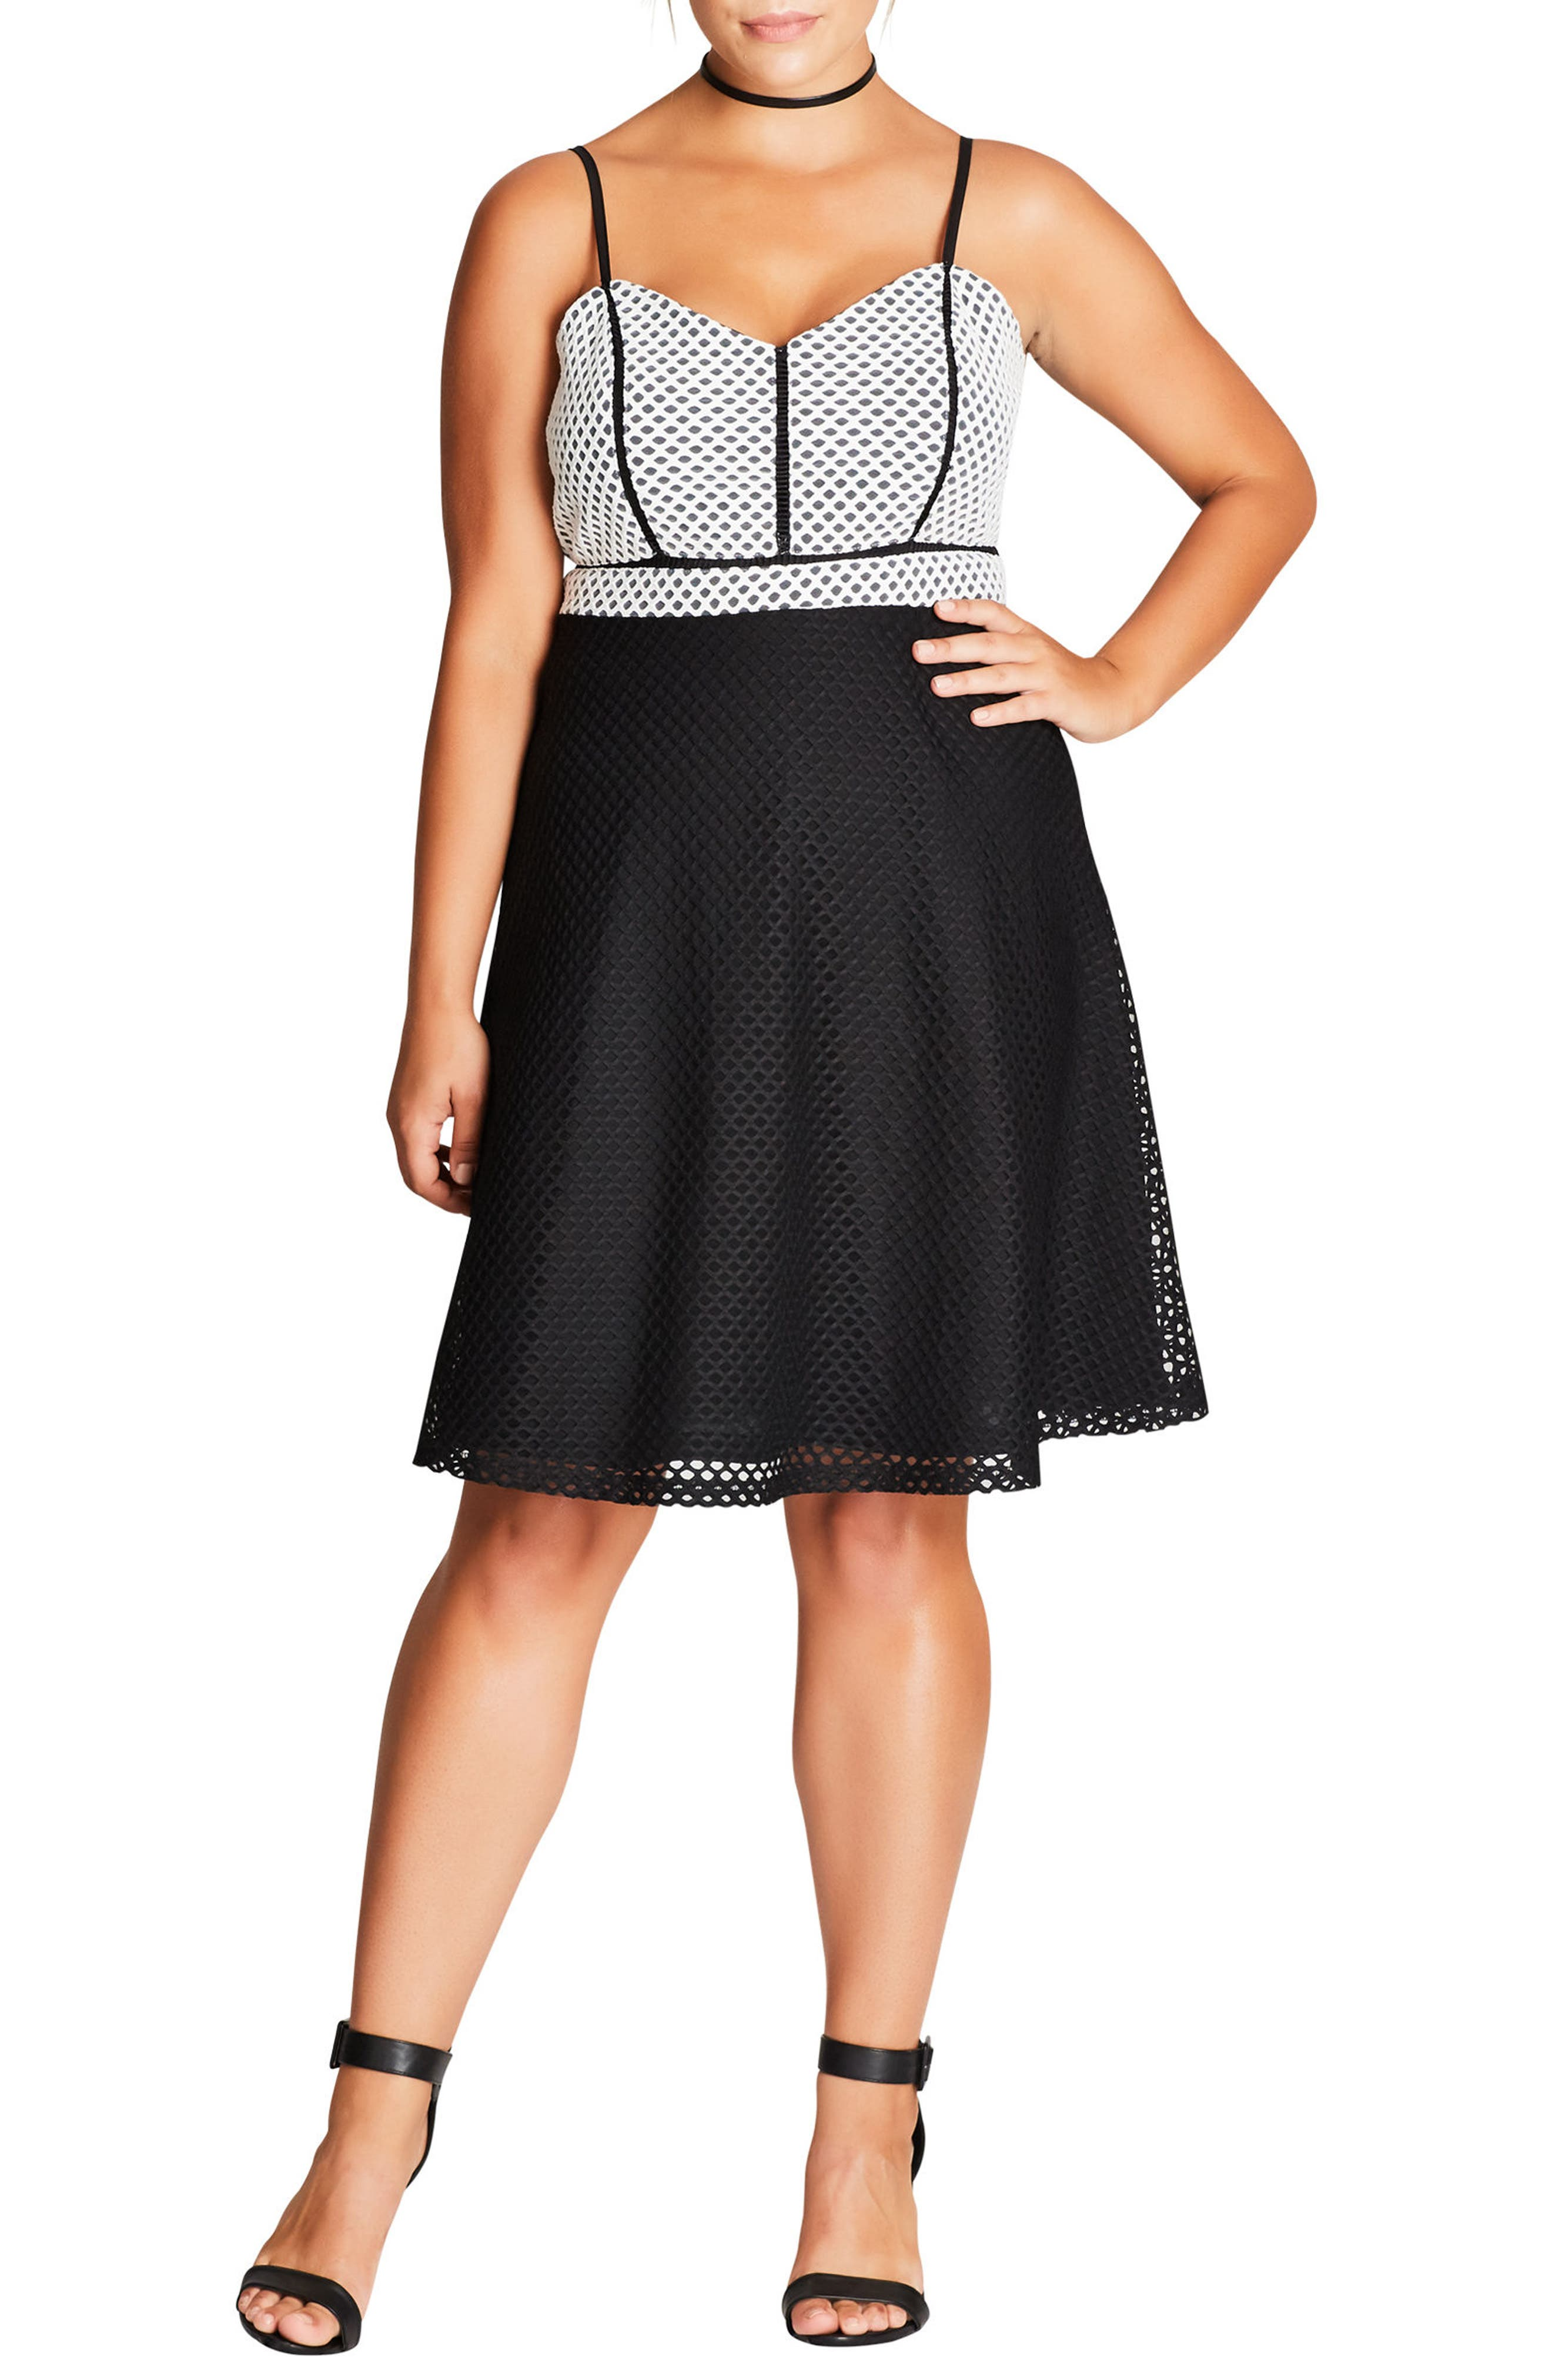 Alternate Image 1 Selected - City Chic Geo Mesh Fit & Flare Dress (Plus Size)